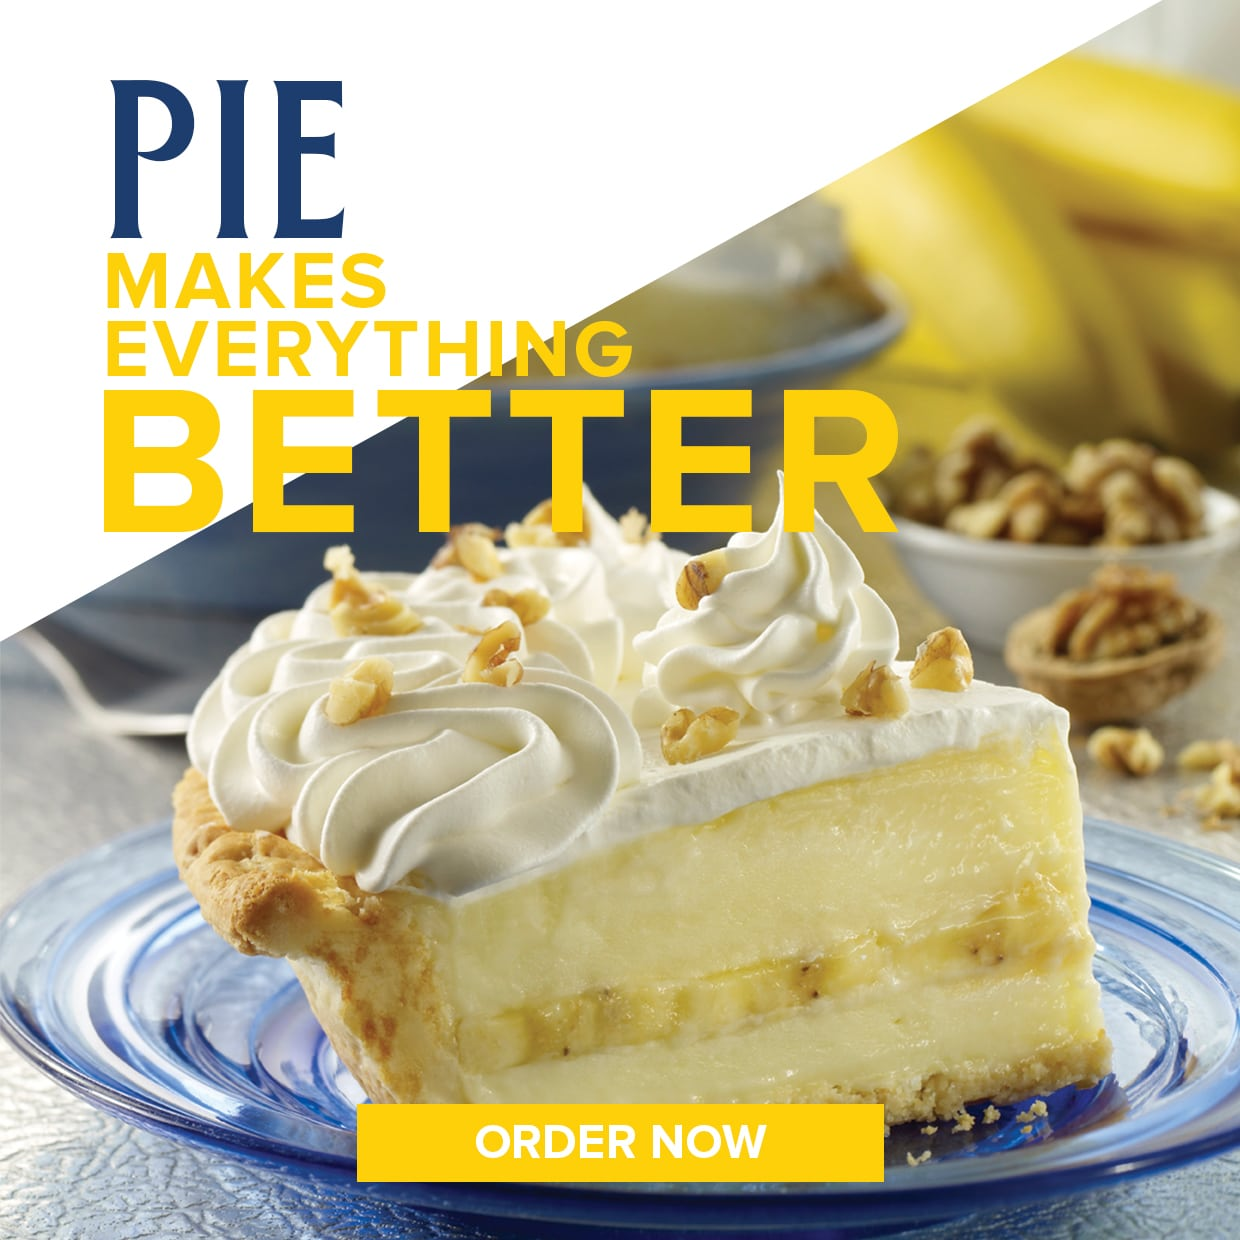 Pie Makes Everything Better. Order now